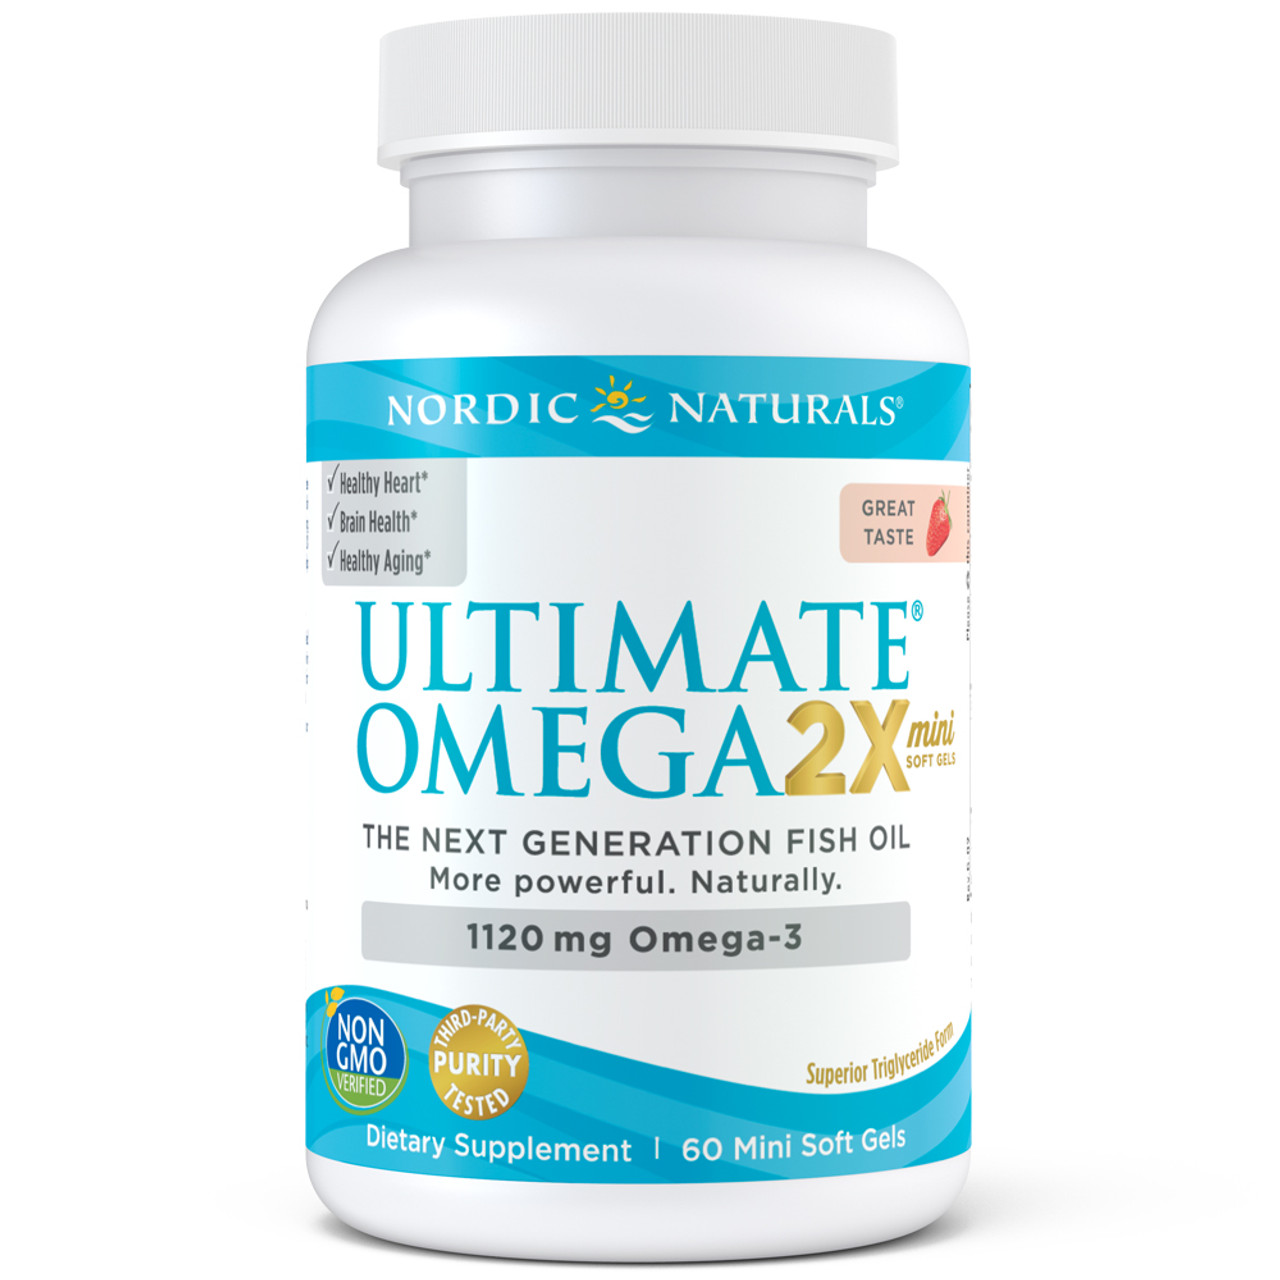 Ultimate Omega 2x Mini Strawberry